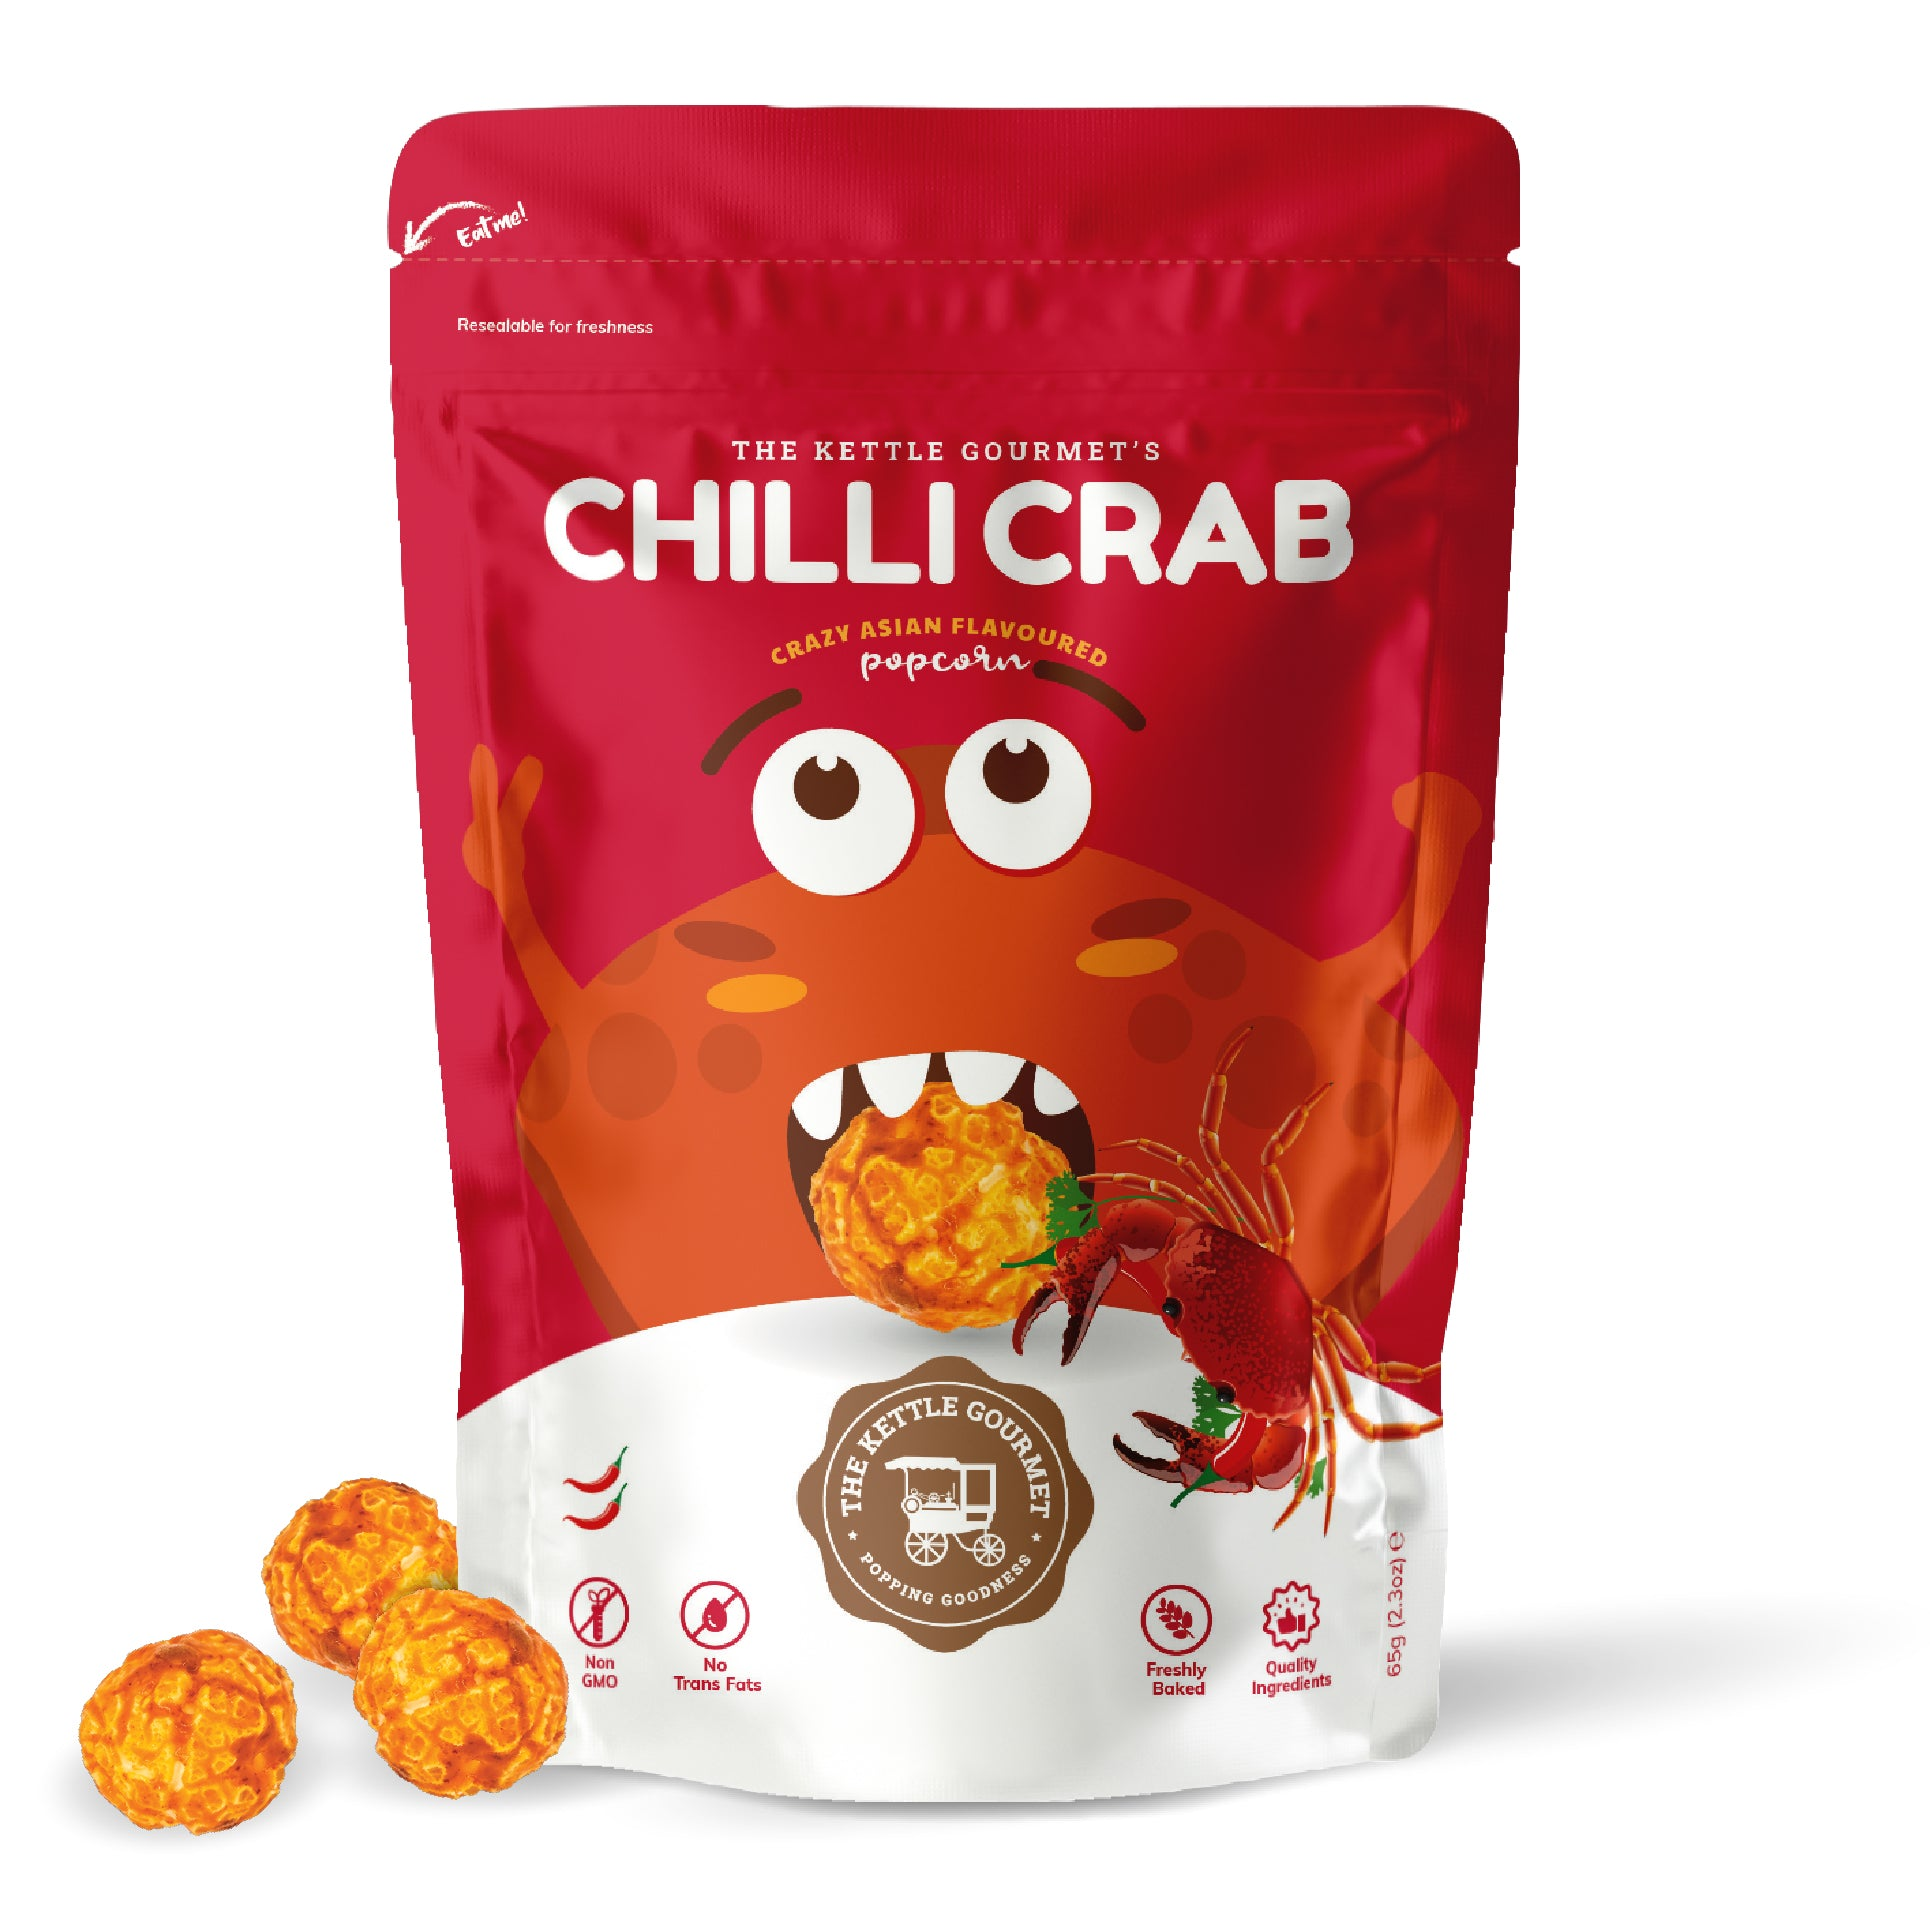 TKG Chilli Crab (Crazy Asian Flavoured Popcorn)